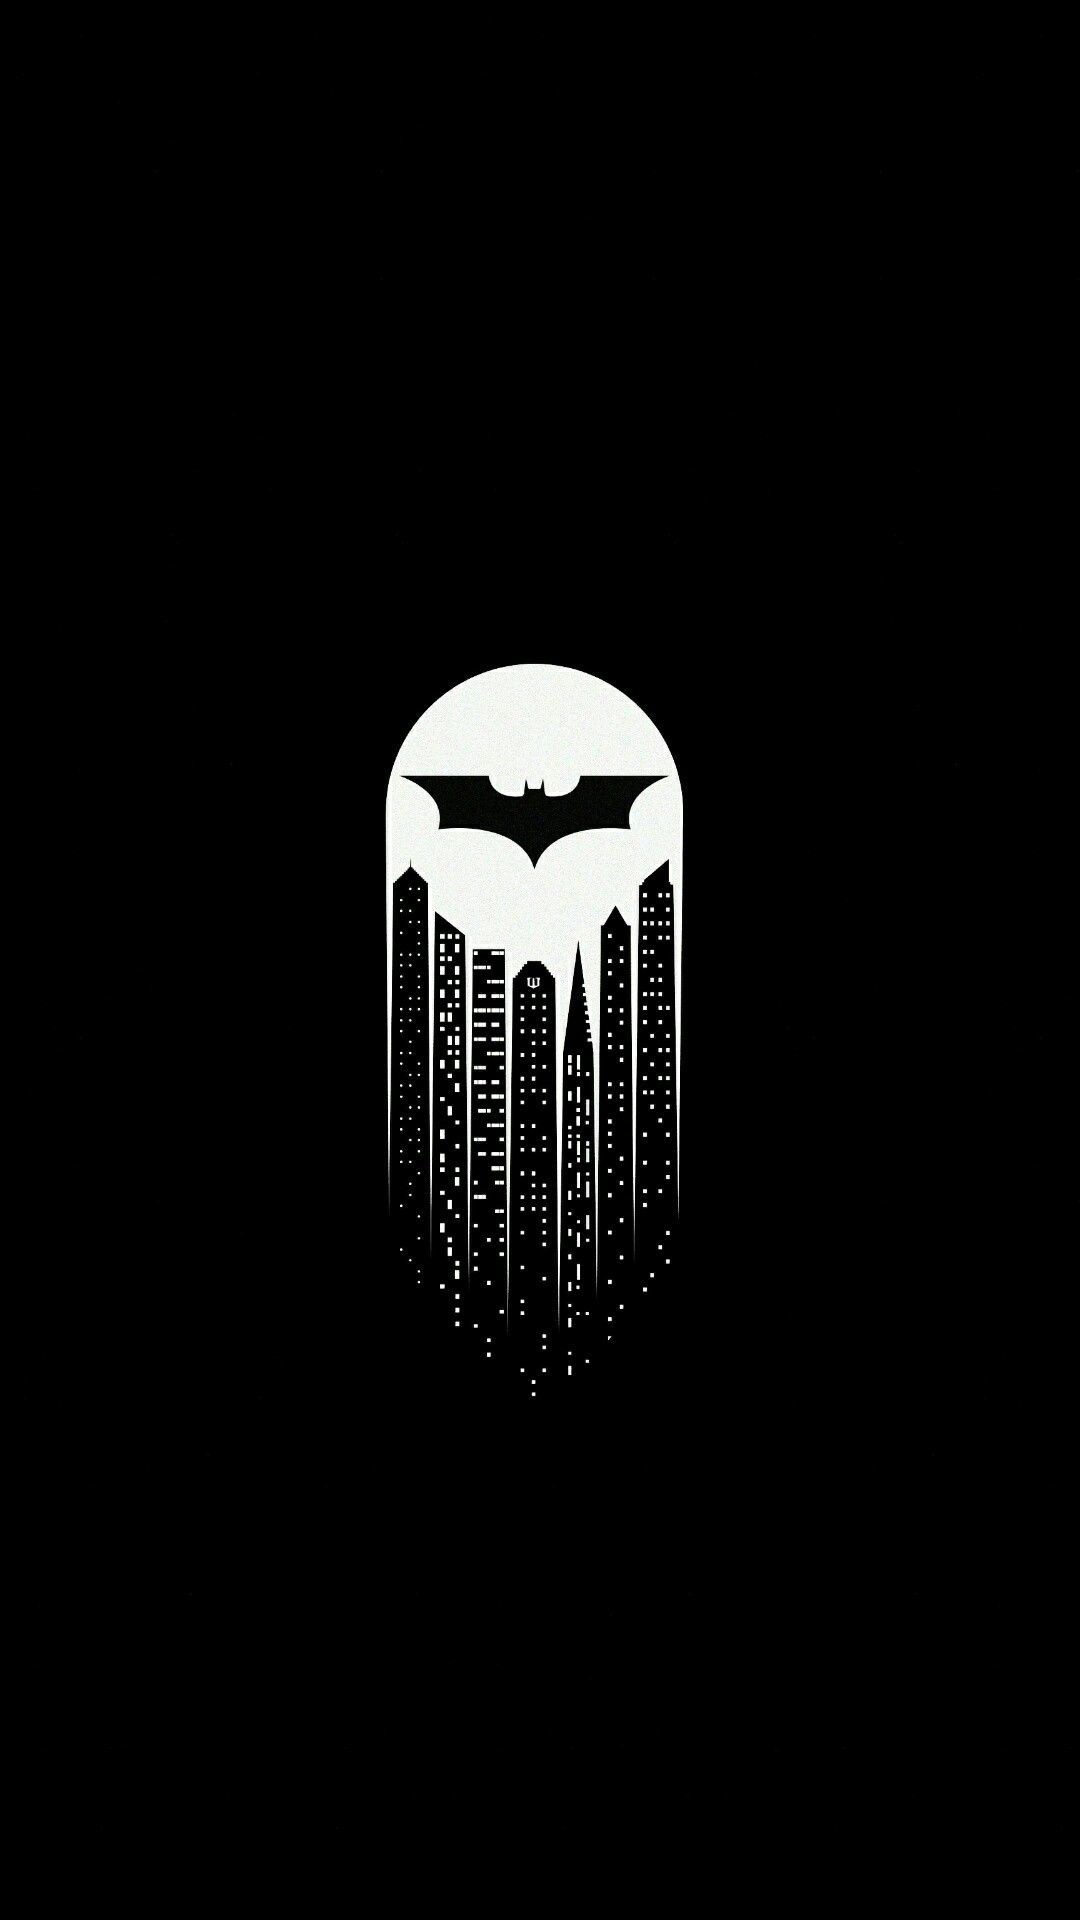 1080x1920 2560x1600 Top Wallpapers Of The Day: Batman Beyond HD : px Batman Beyond HD  Wallpapers